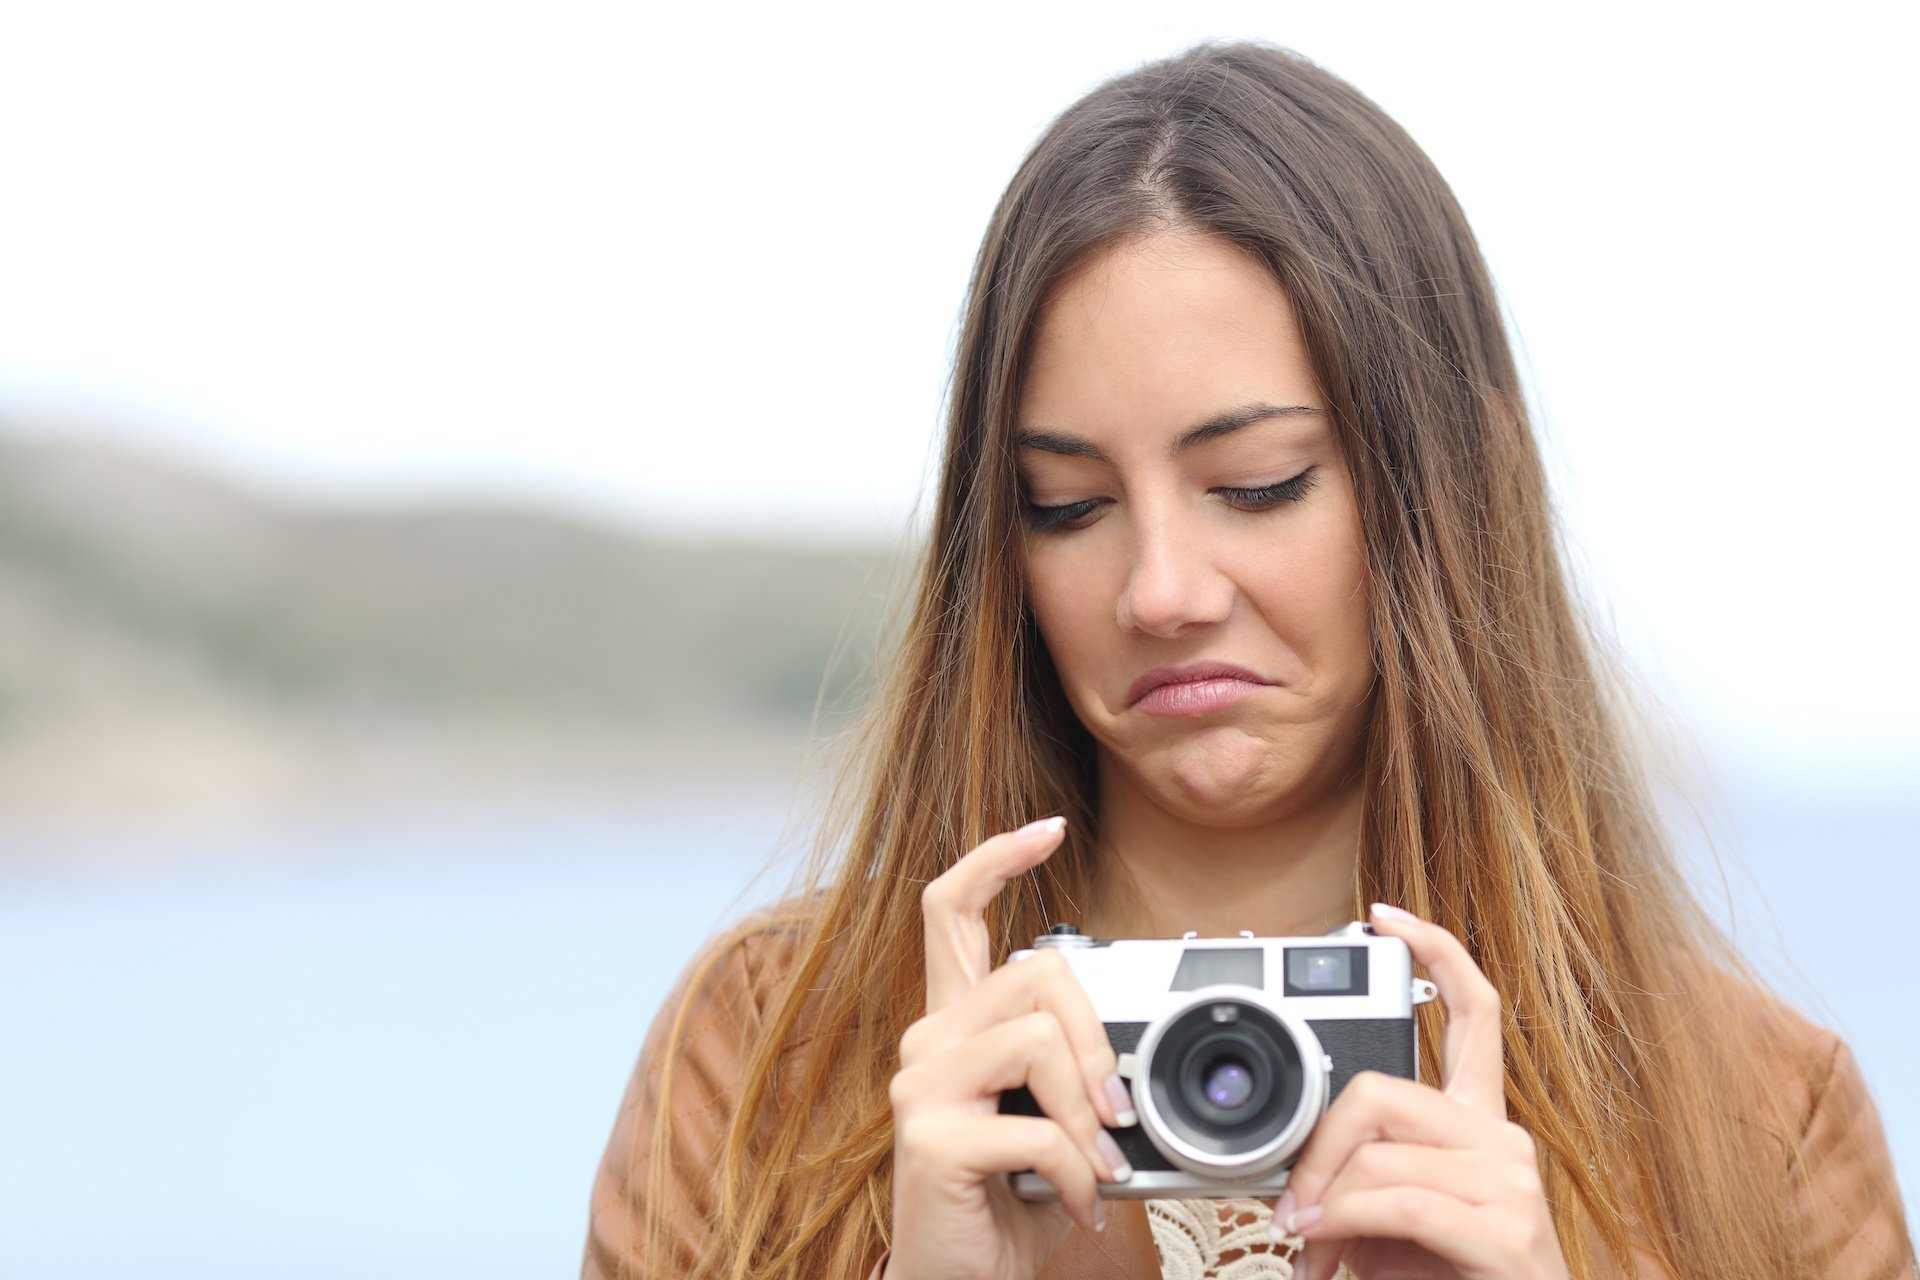 10 High-quality Free Stock Photo Websites That Don't Suck